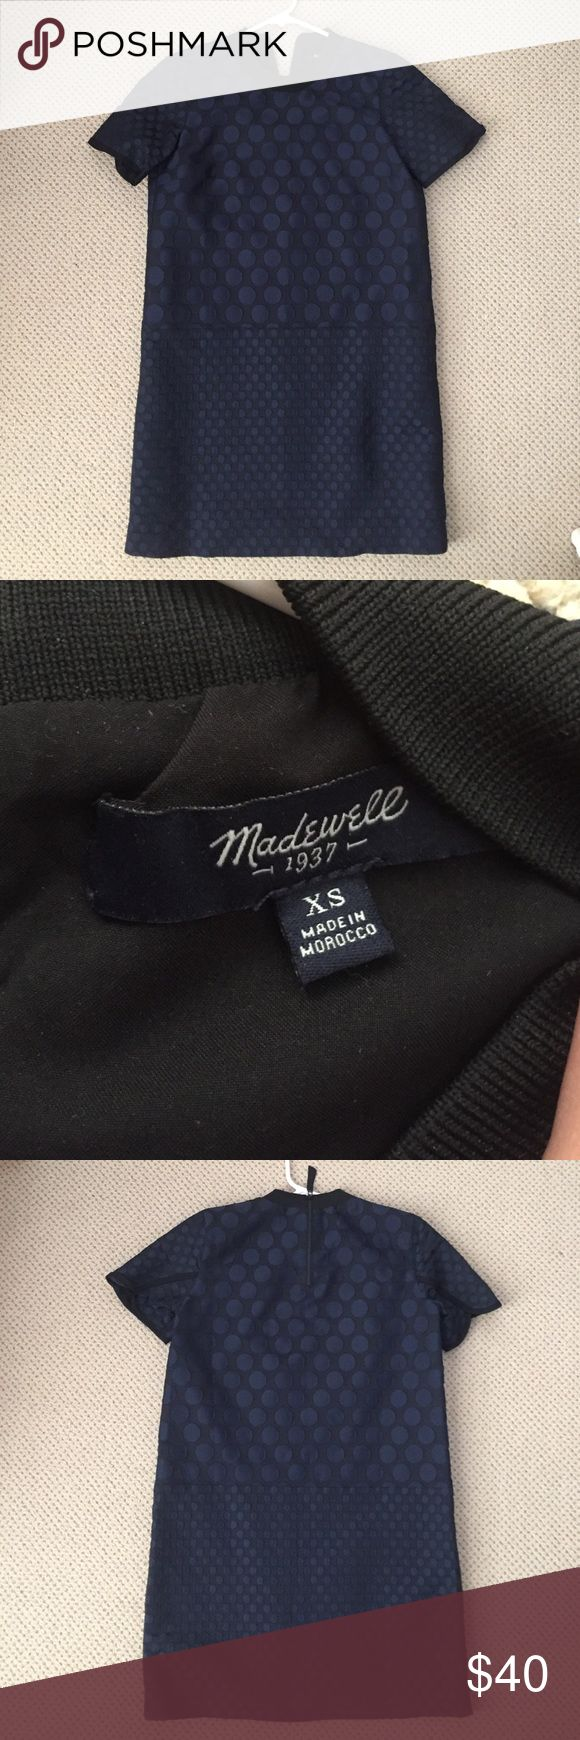 Madewell Polka Dot Shift Dress Beautiful Madewell shift dress in navy blue and black polka dot colors. Great for work or a night out! Only worn once but doesn't fit me anymore. Madewell Dresses Mini